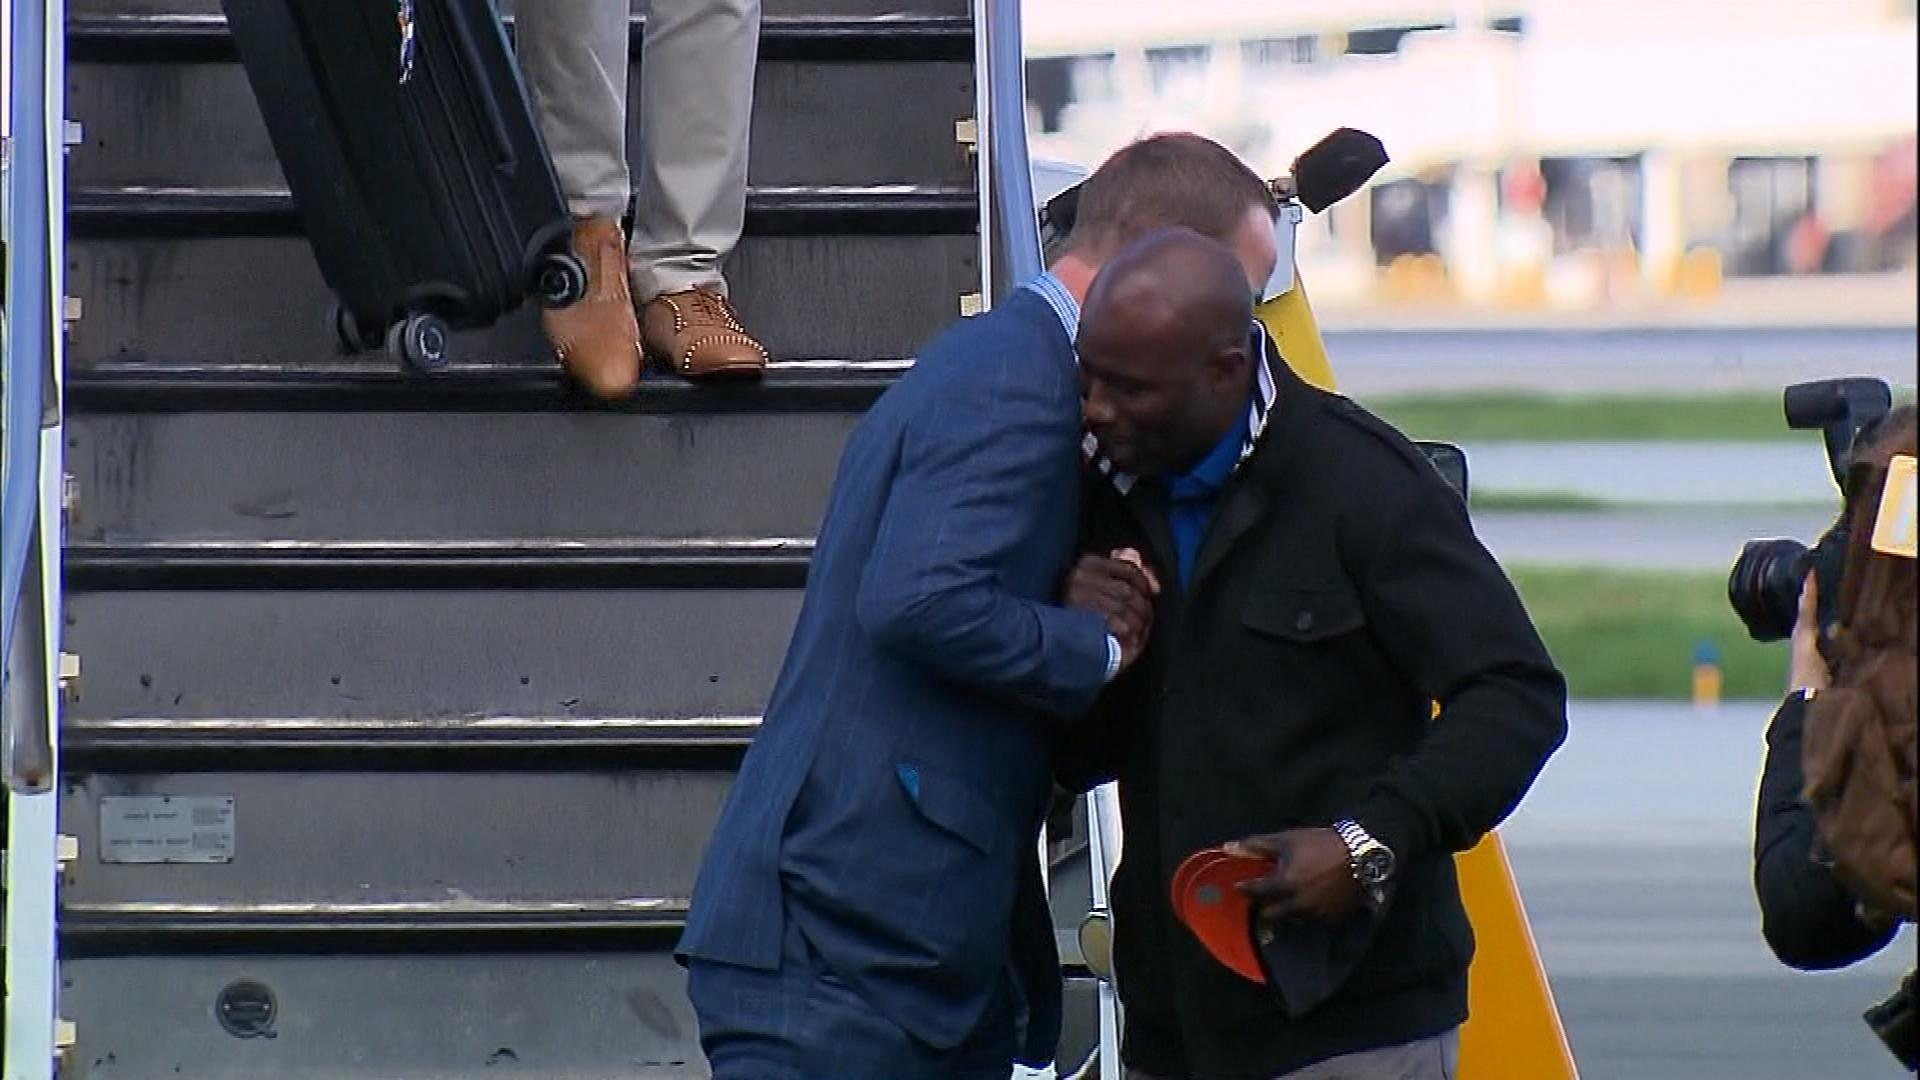 Peyton Manning gets a hug from Terrell Davis after getting off the plane (credit: CBS)